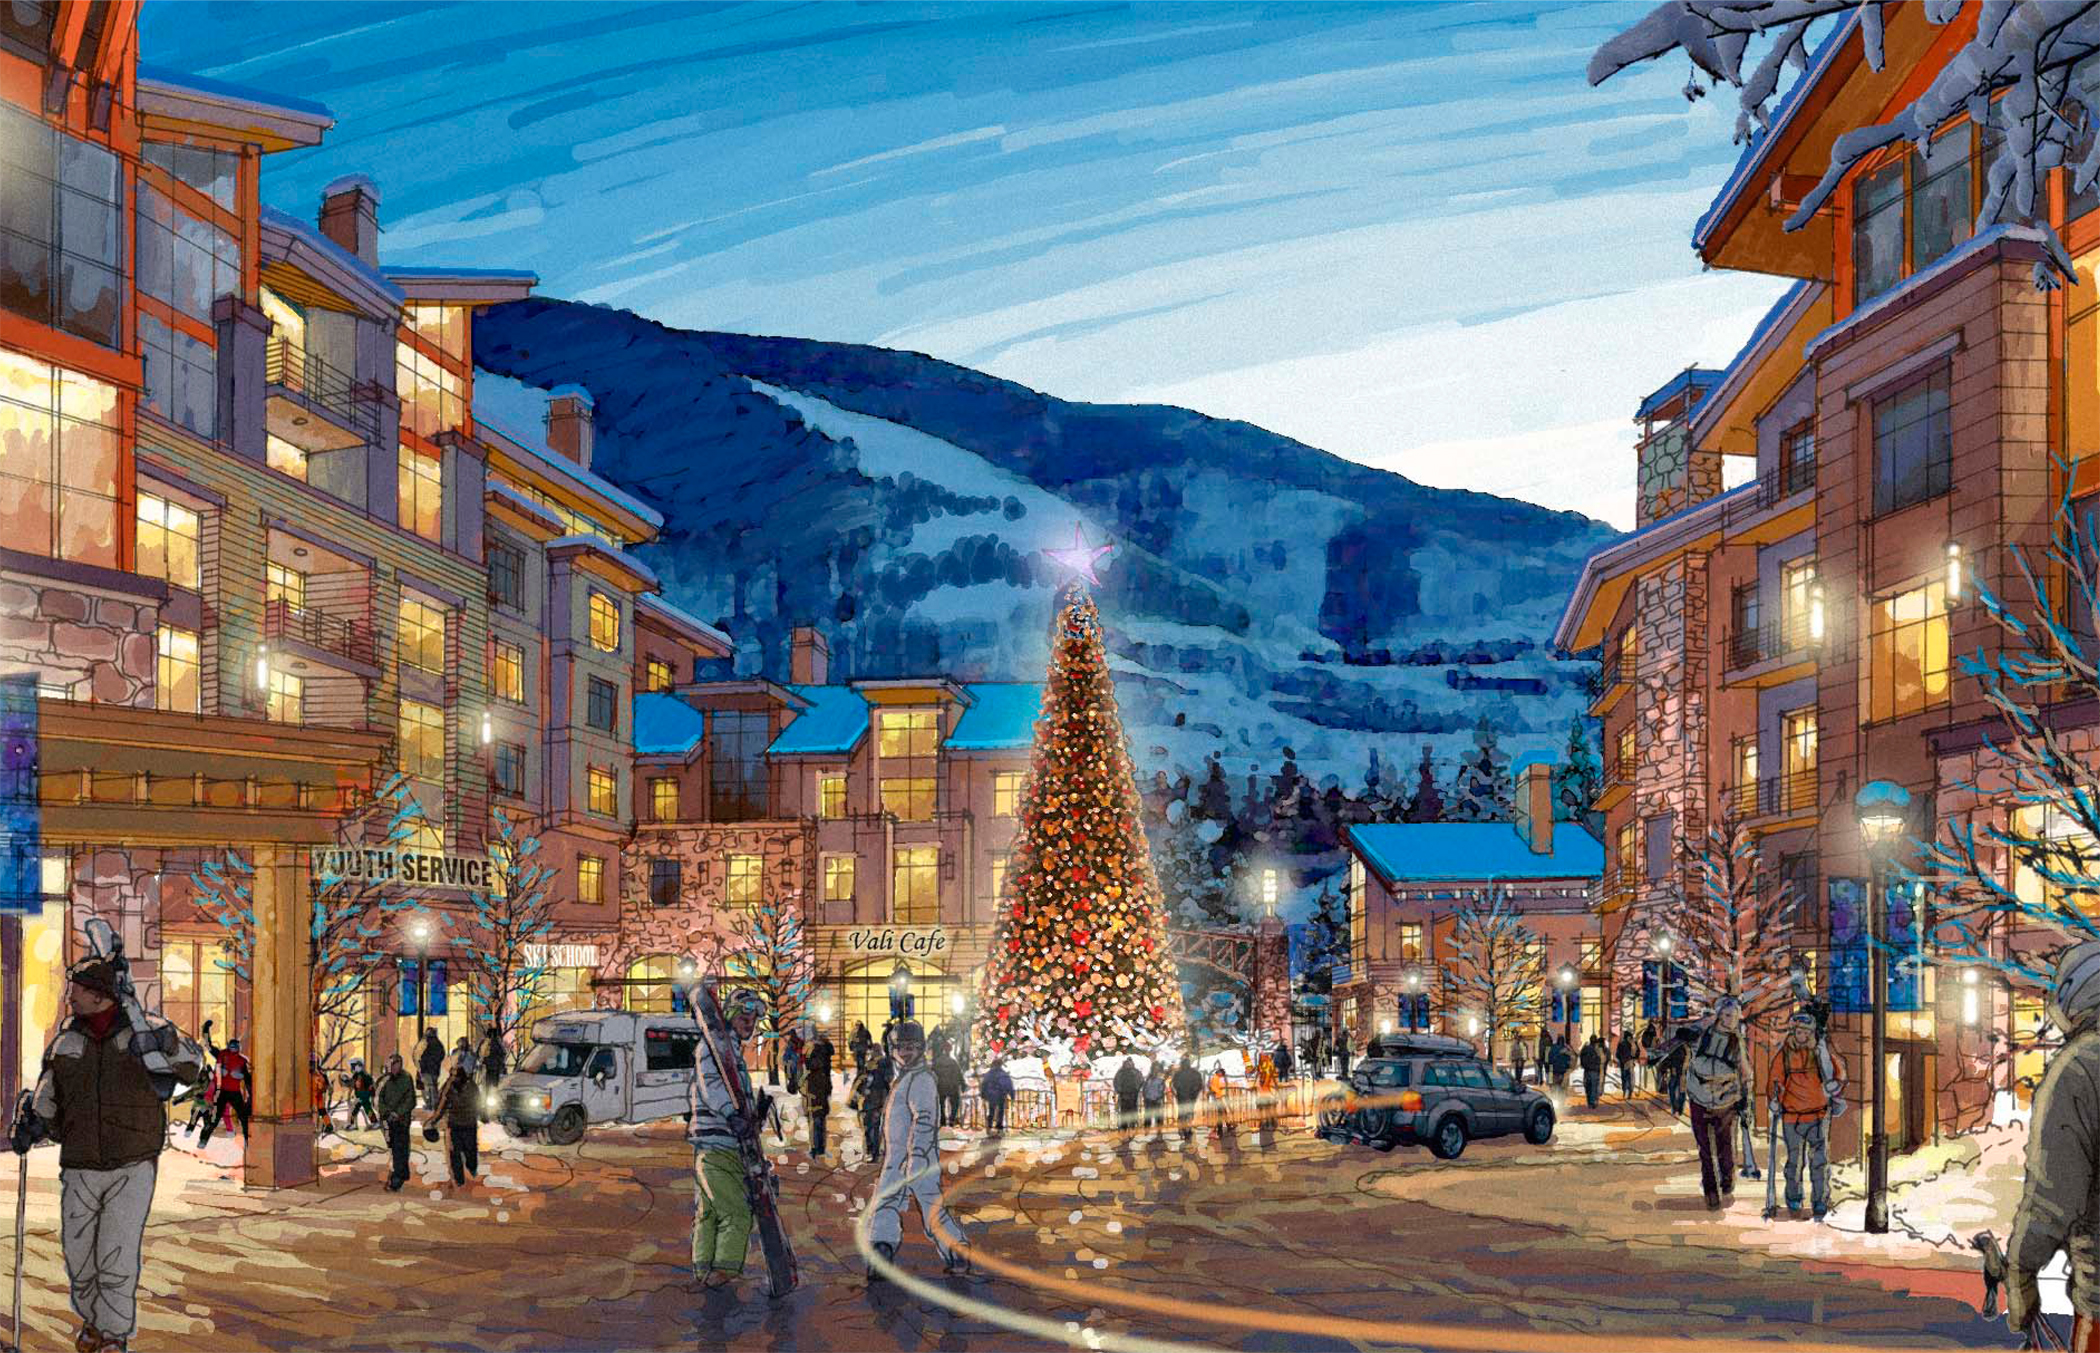 """<img src="""" studioINSITE_Ever_Vail_Village_Illustrative """"alt=""""Vail, Mountain Commnity, Ever Vail, Sking, Snowboarding, Mountain Living, Planning, Landscape Architecture, Mountain Resort, Rocky Mountains, Winter,  """" title=""""Ever Vail""""/>"""